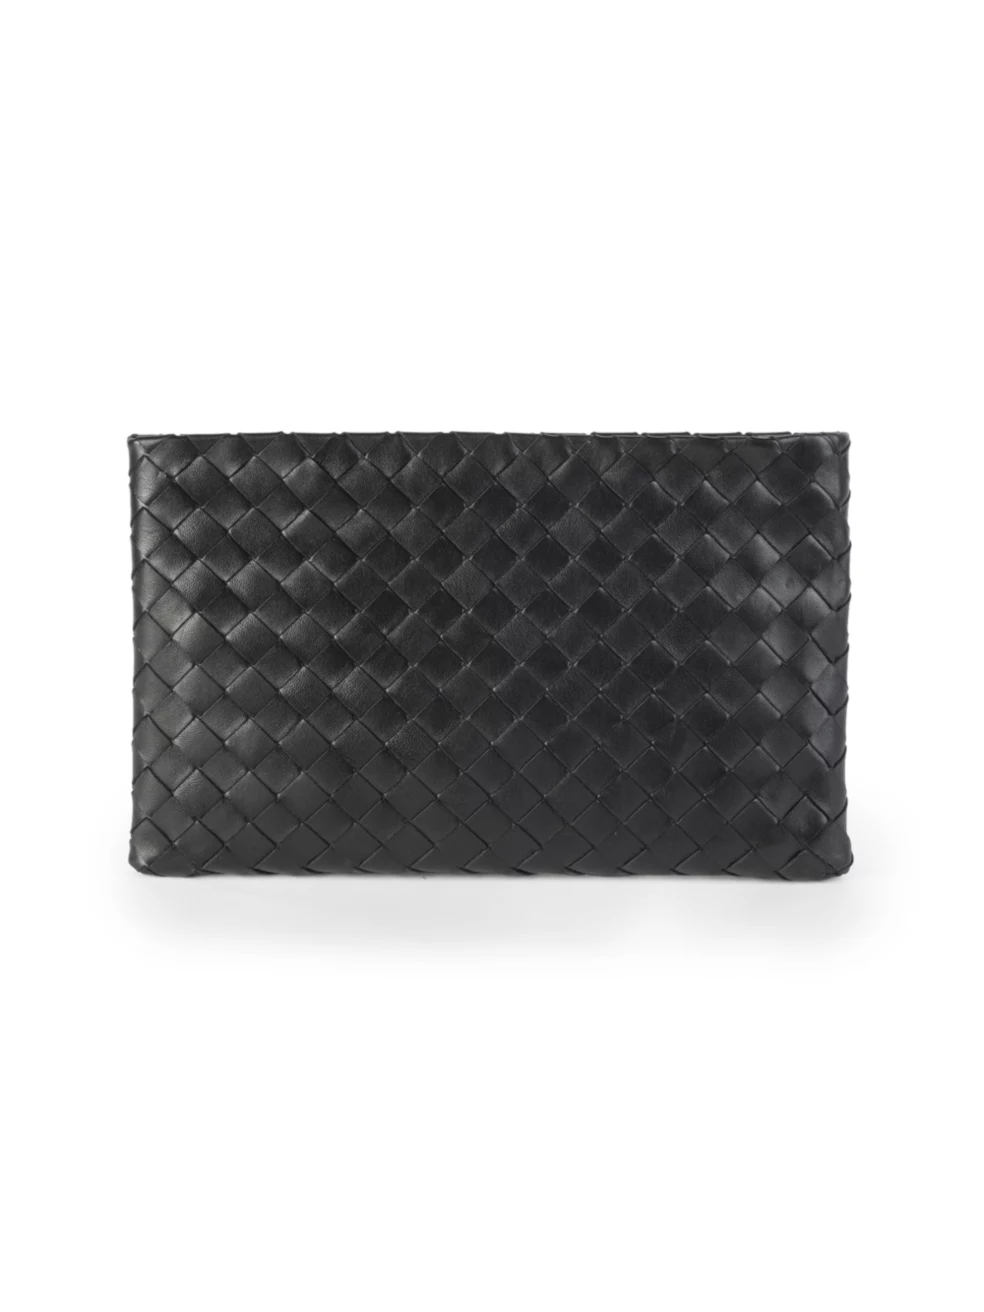 Bottega Veneta Leather Woven Pouch